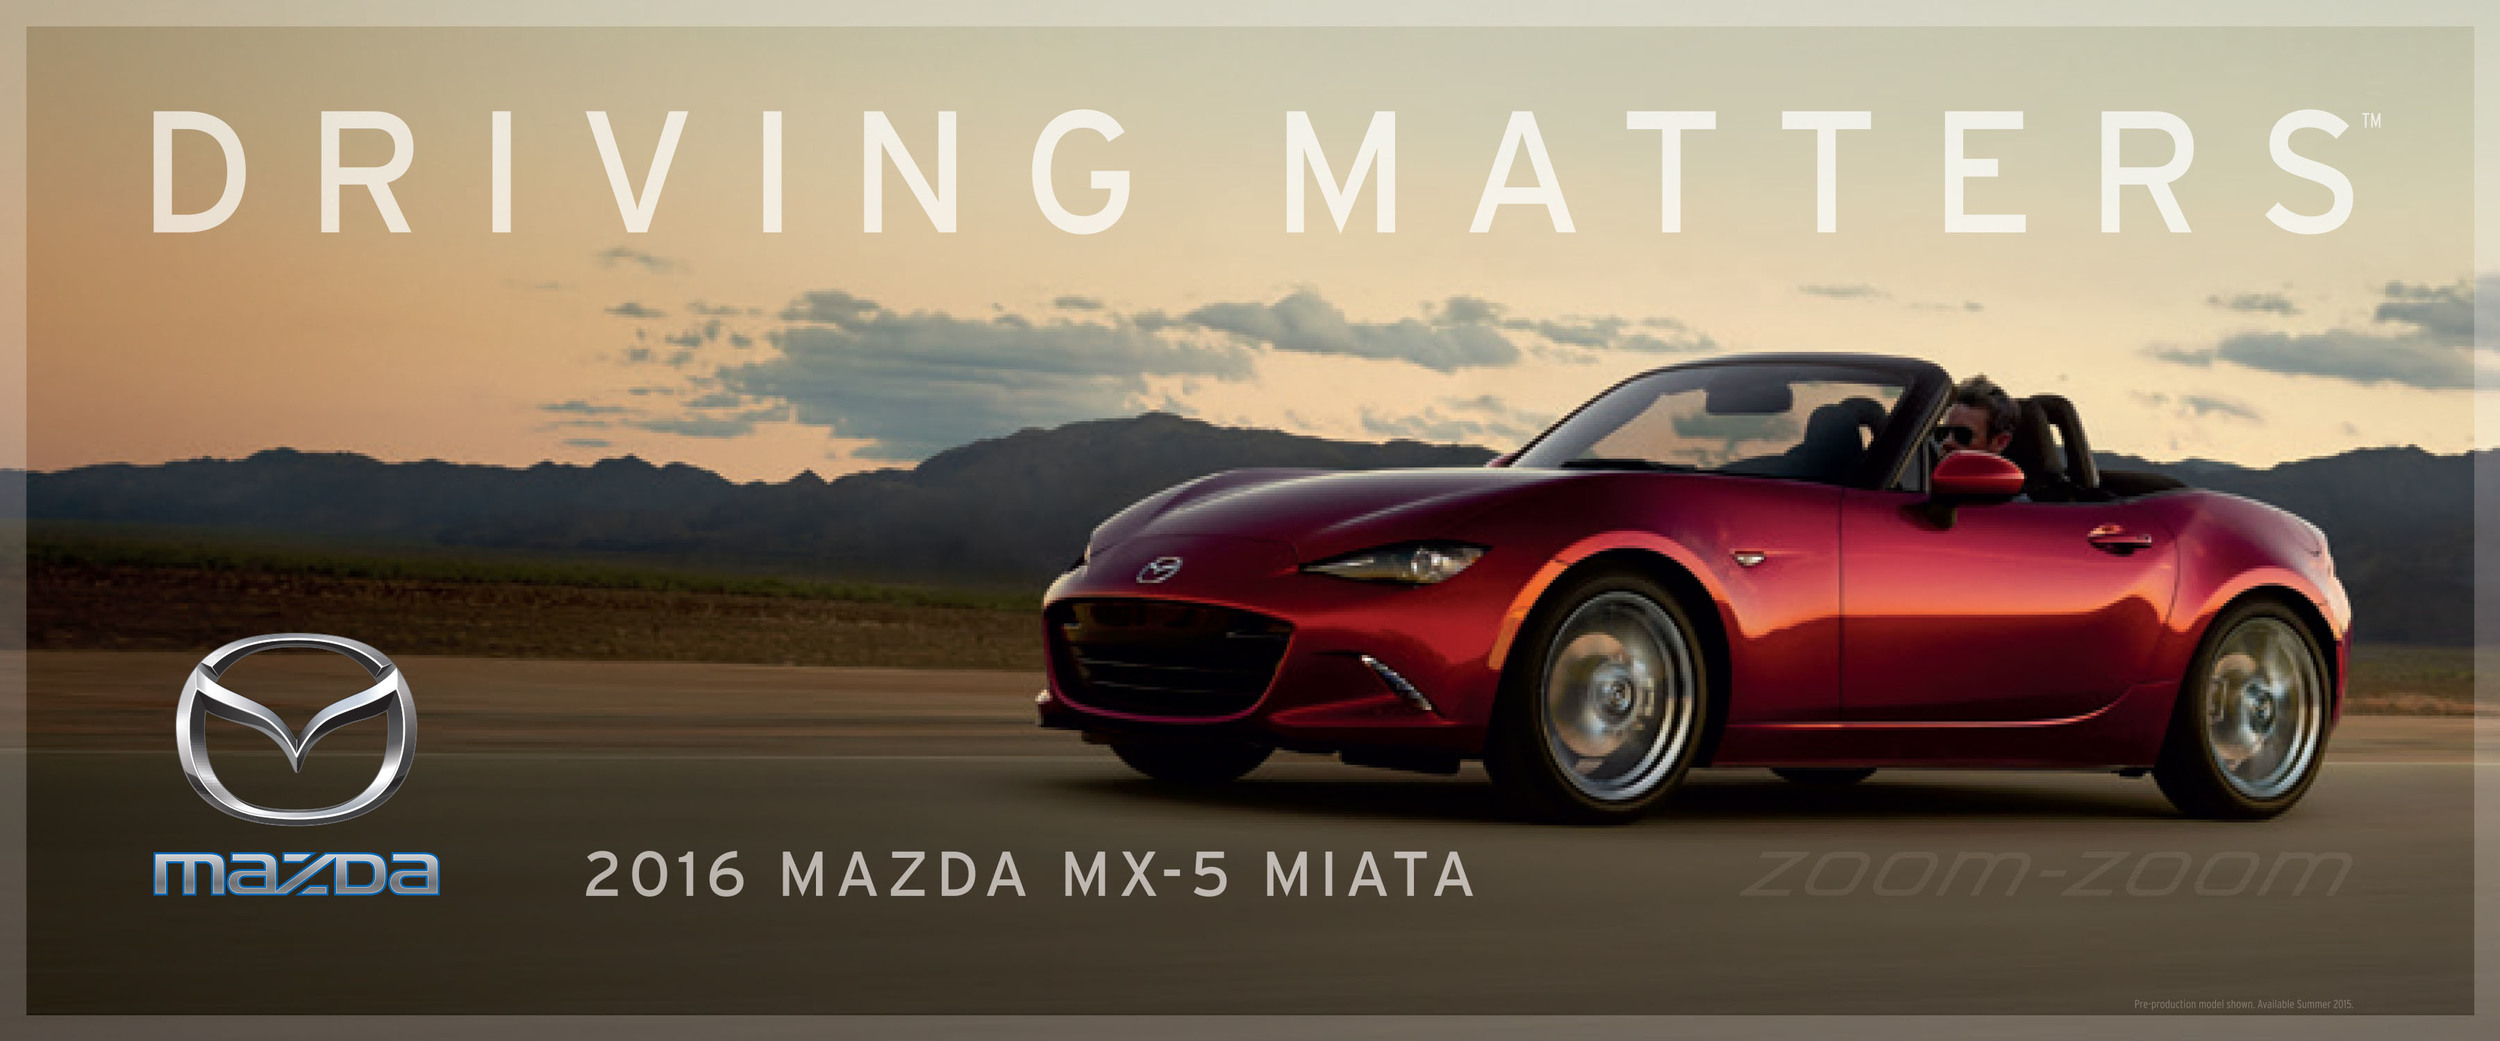 Kia Certified Pre-Owned >> Goodbye Zoom-Zoom, Driving Matters is Mazda's new slogan ...